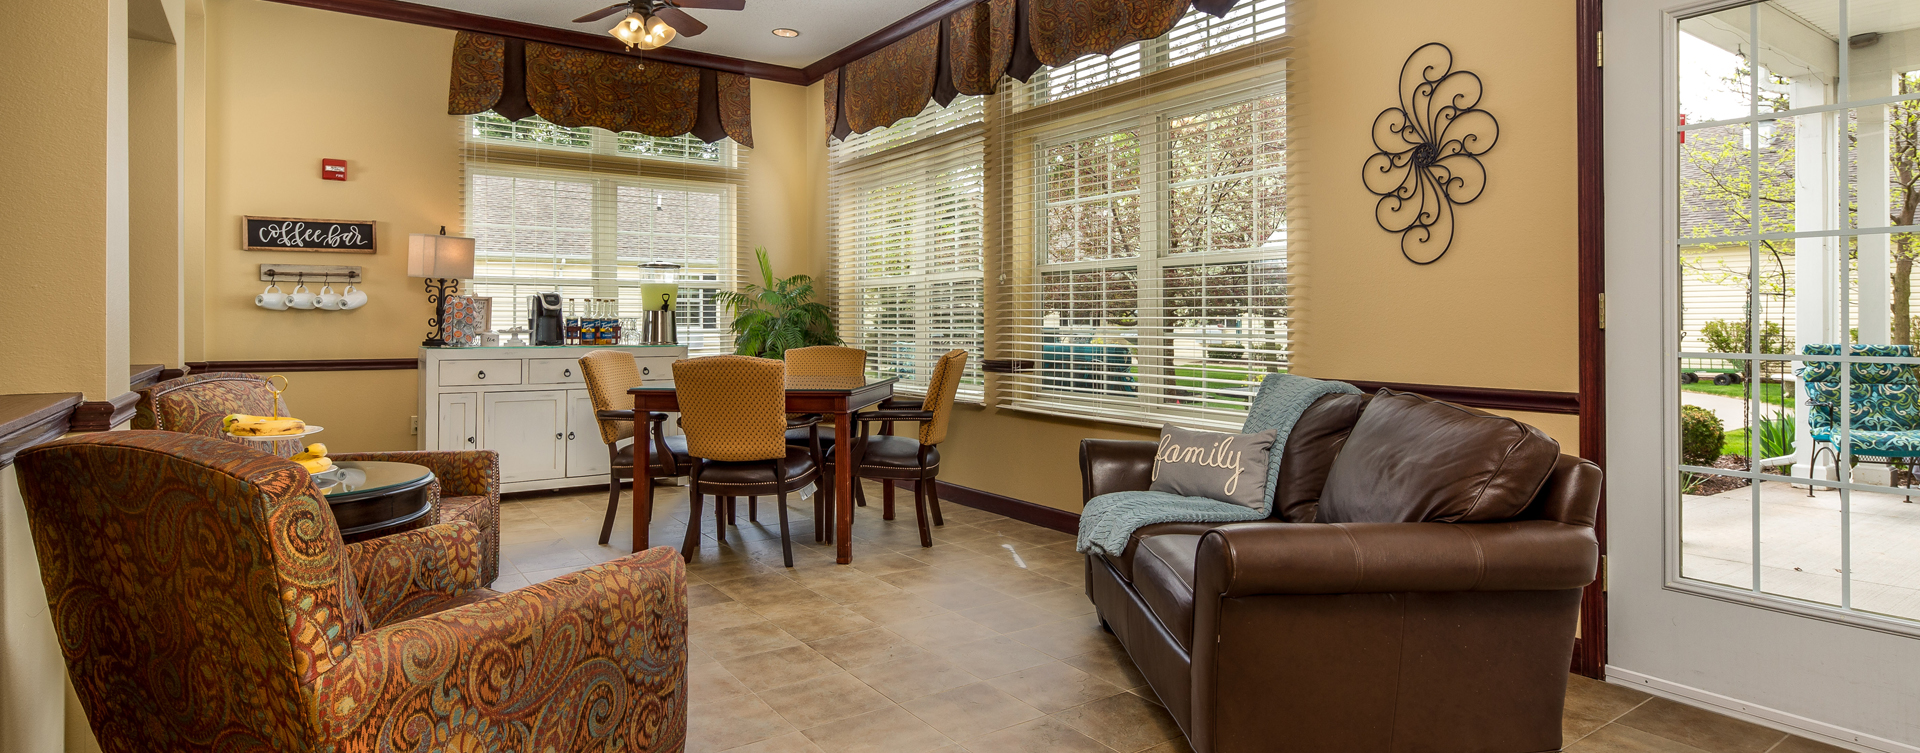 Relax in the warmth of the sunroom at Bickford of Okemos